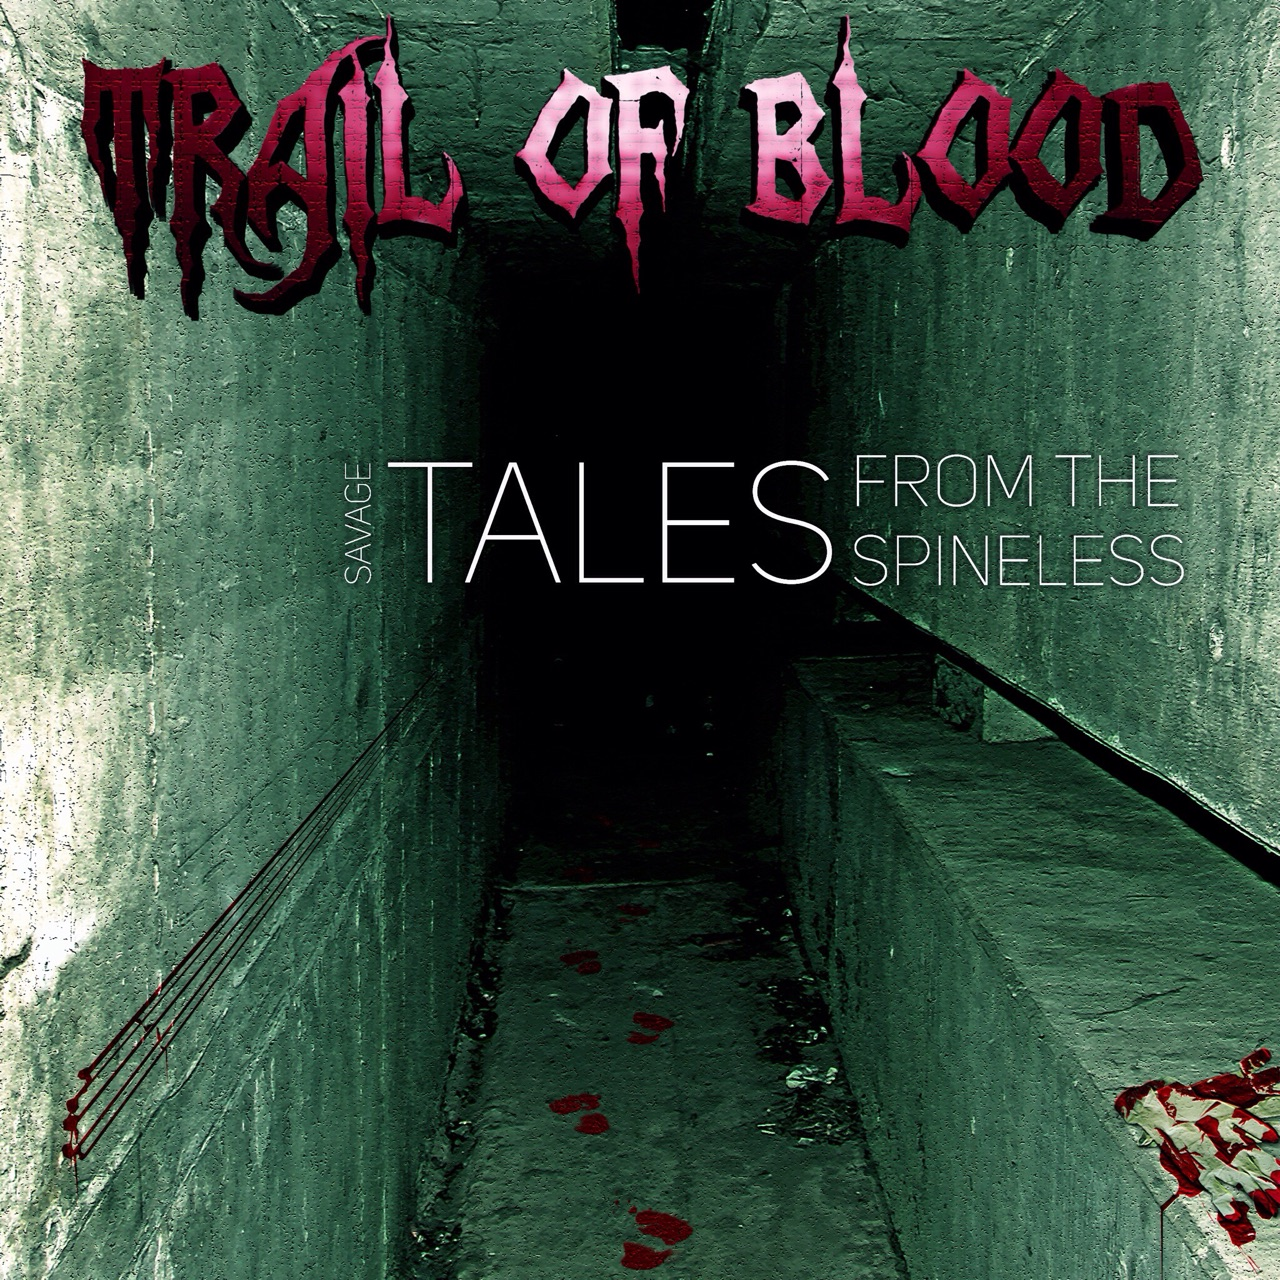 Trail Of Blood – Savage Tales From The Spineless 3/6